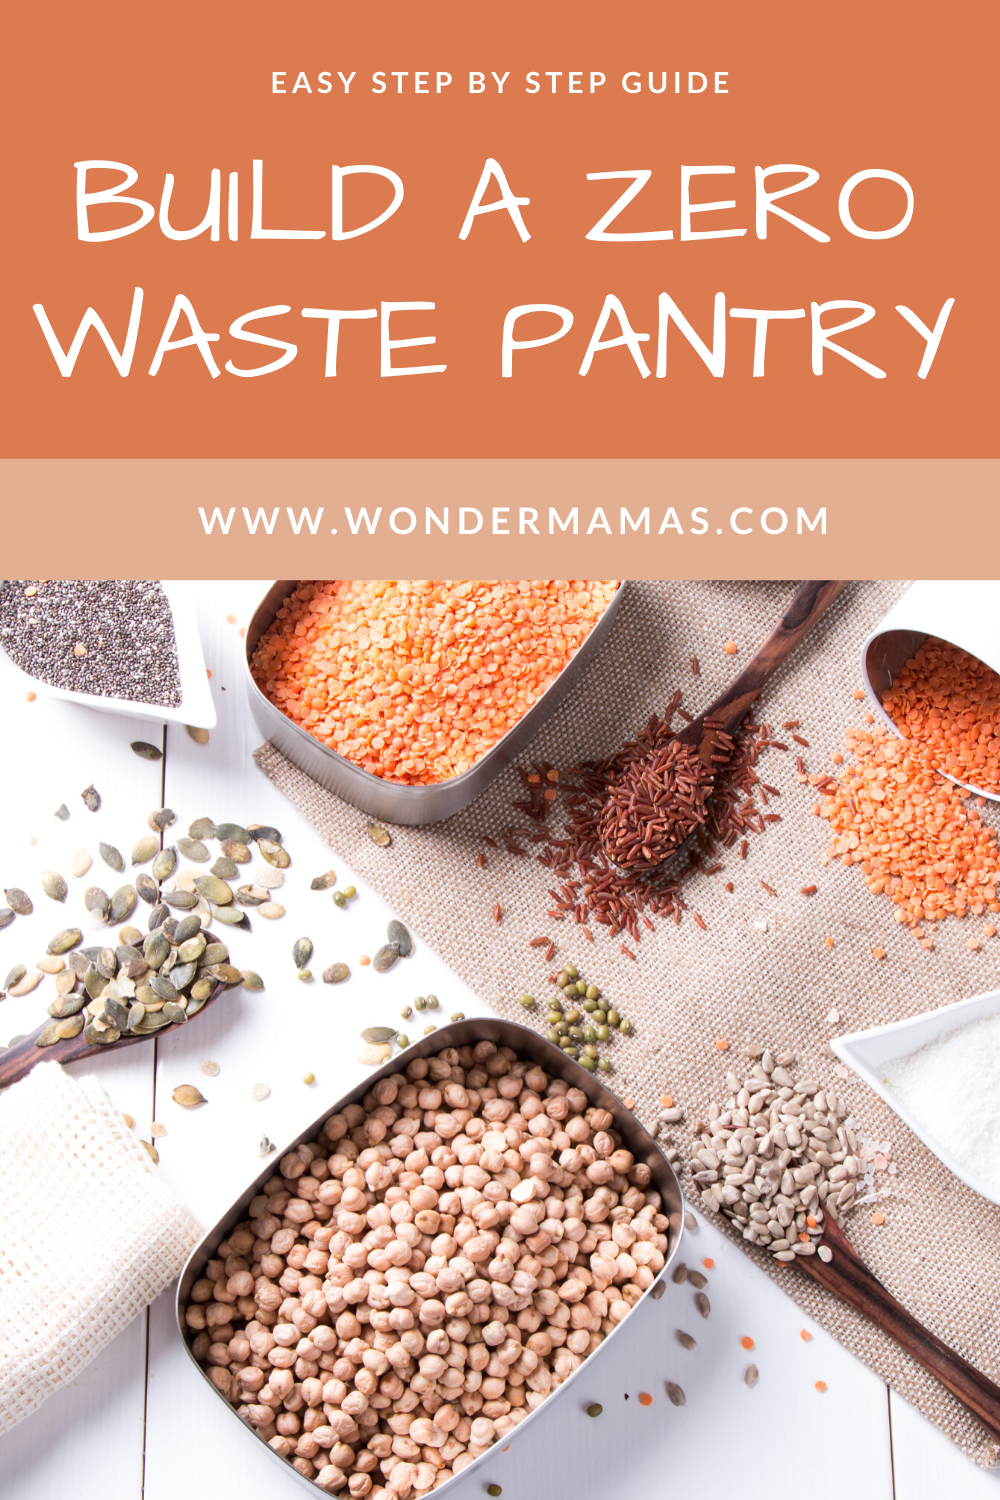 zero waste pantry guide